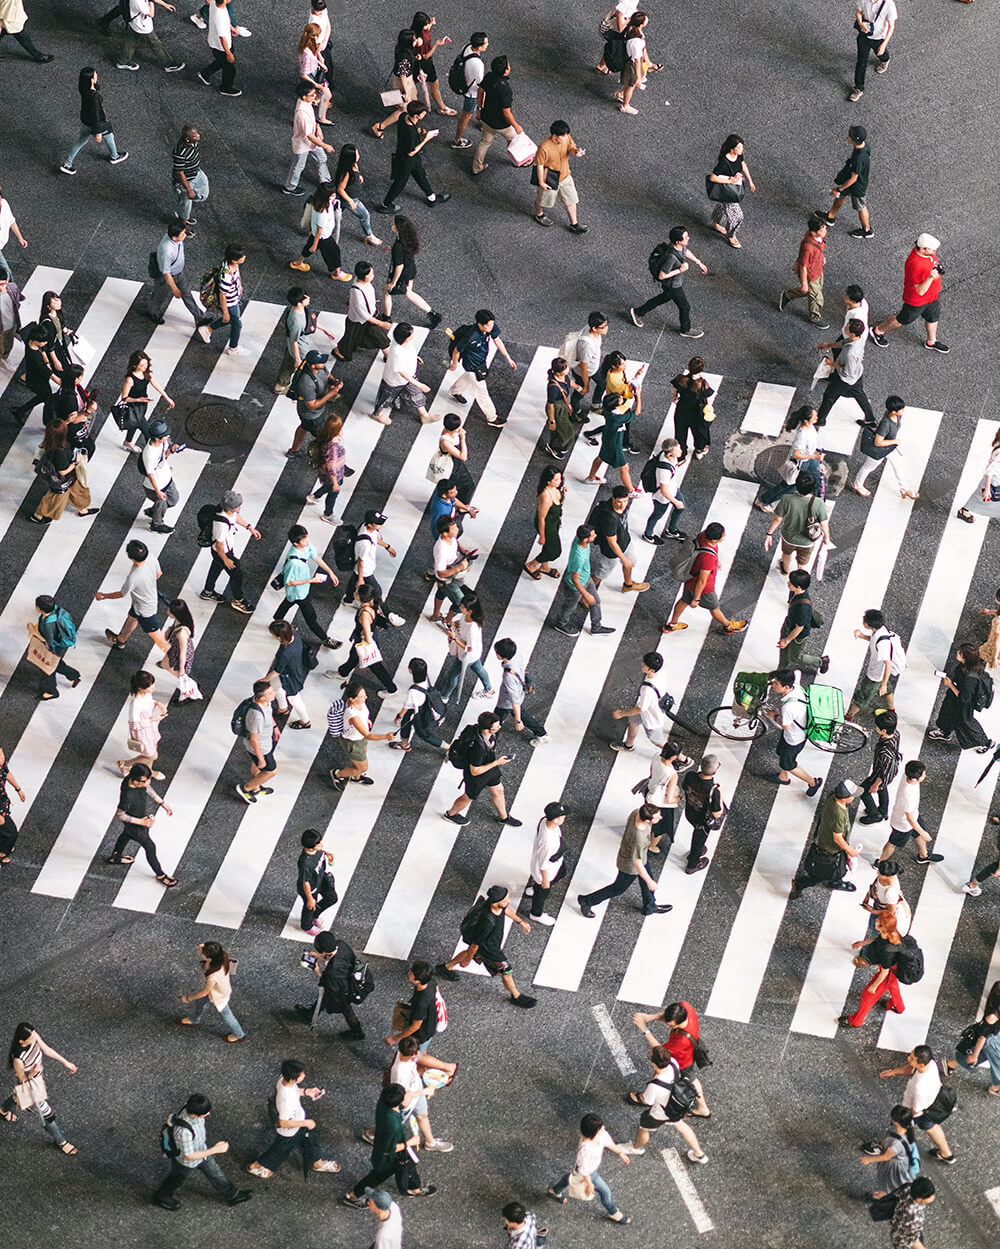 photo of the Shibuya crossing from above